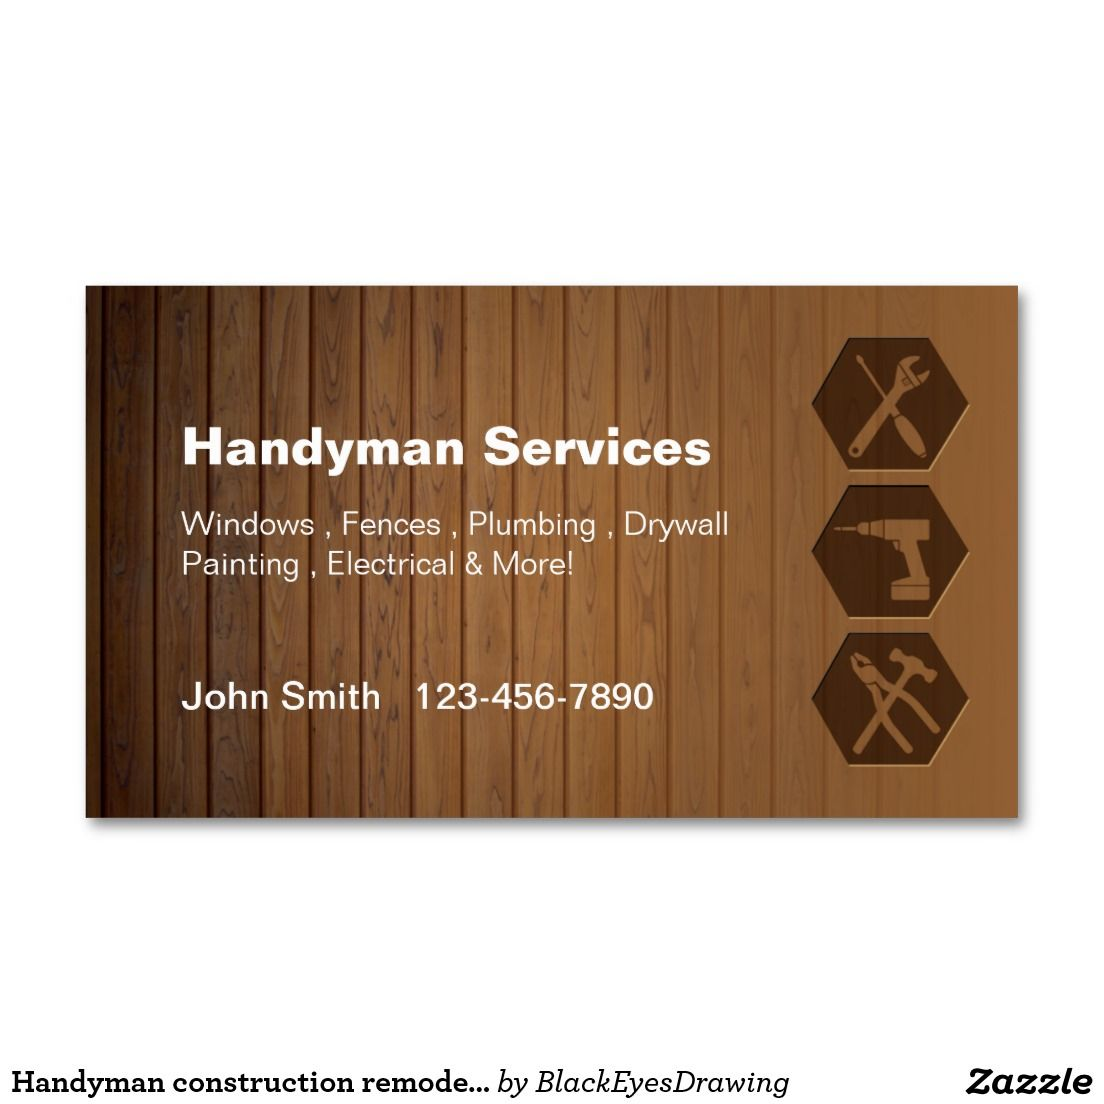 Handyman construction remodeling business cards construction handyman construction remodeling business cards reheart Gallery